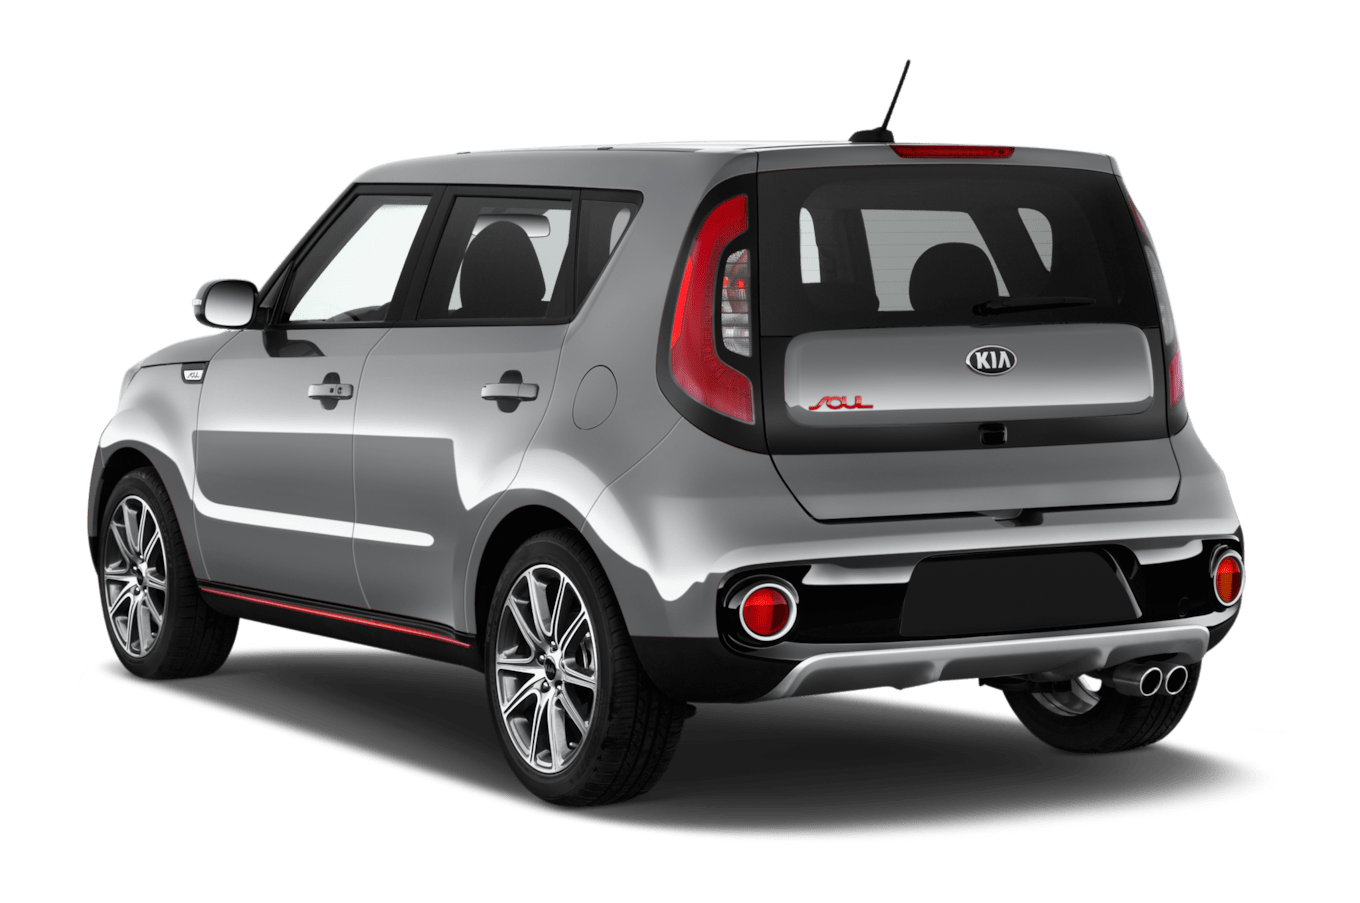 2018 Kia Soul Reviews And Rating  Motortrend